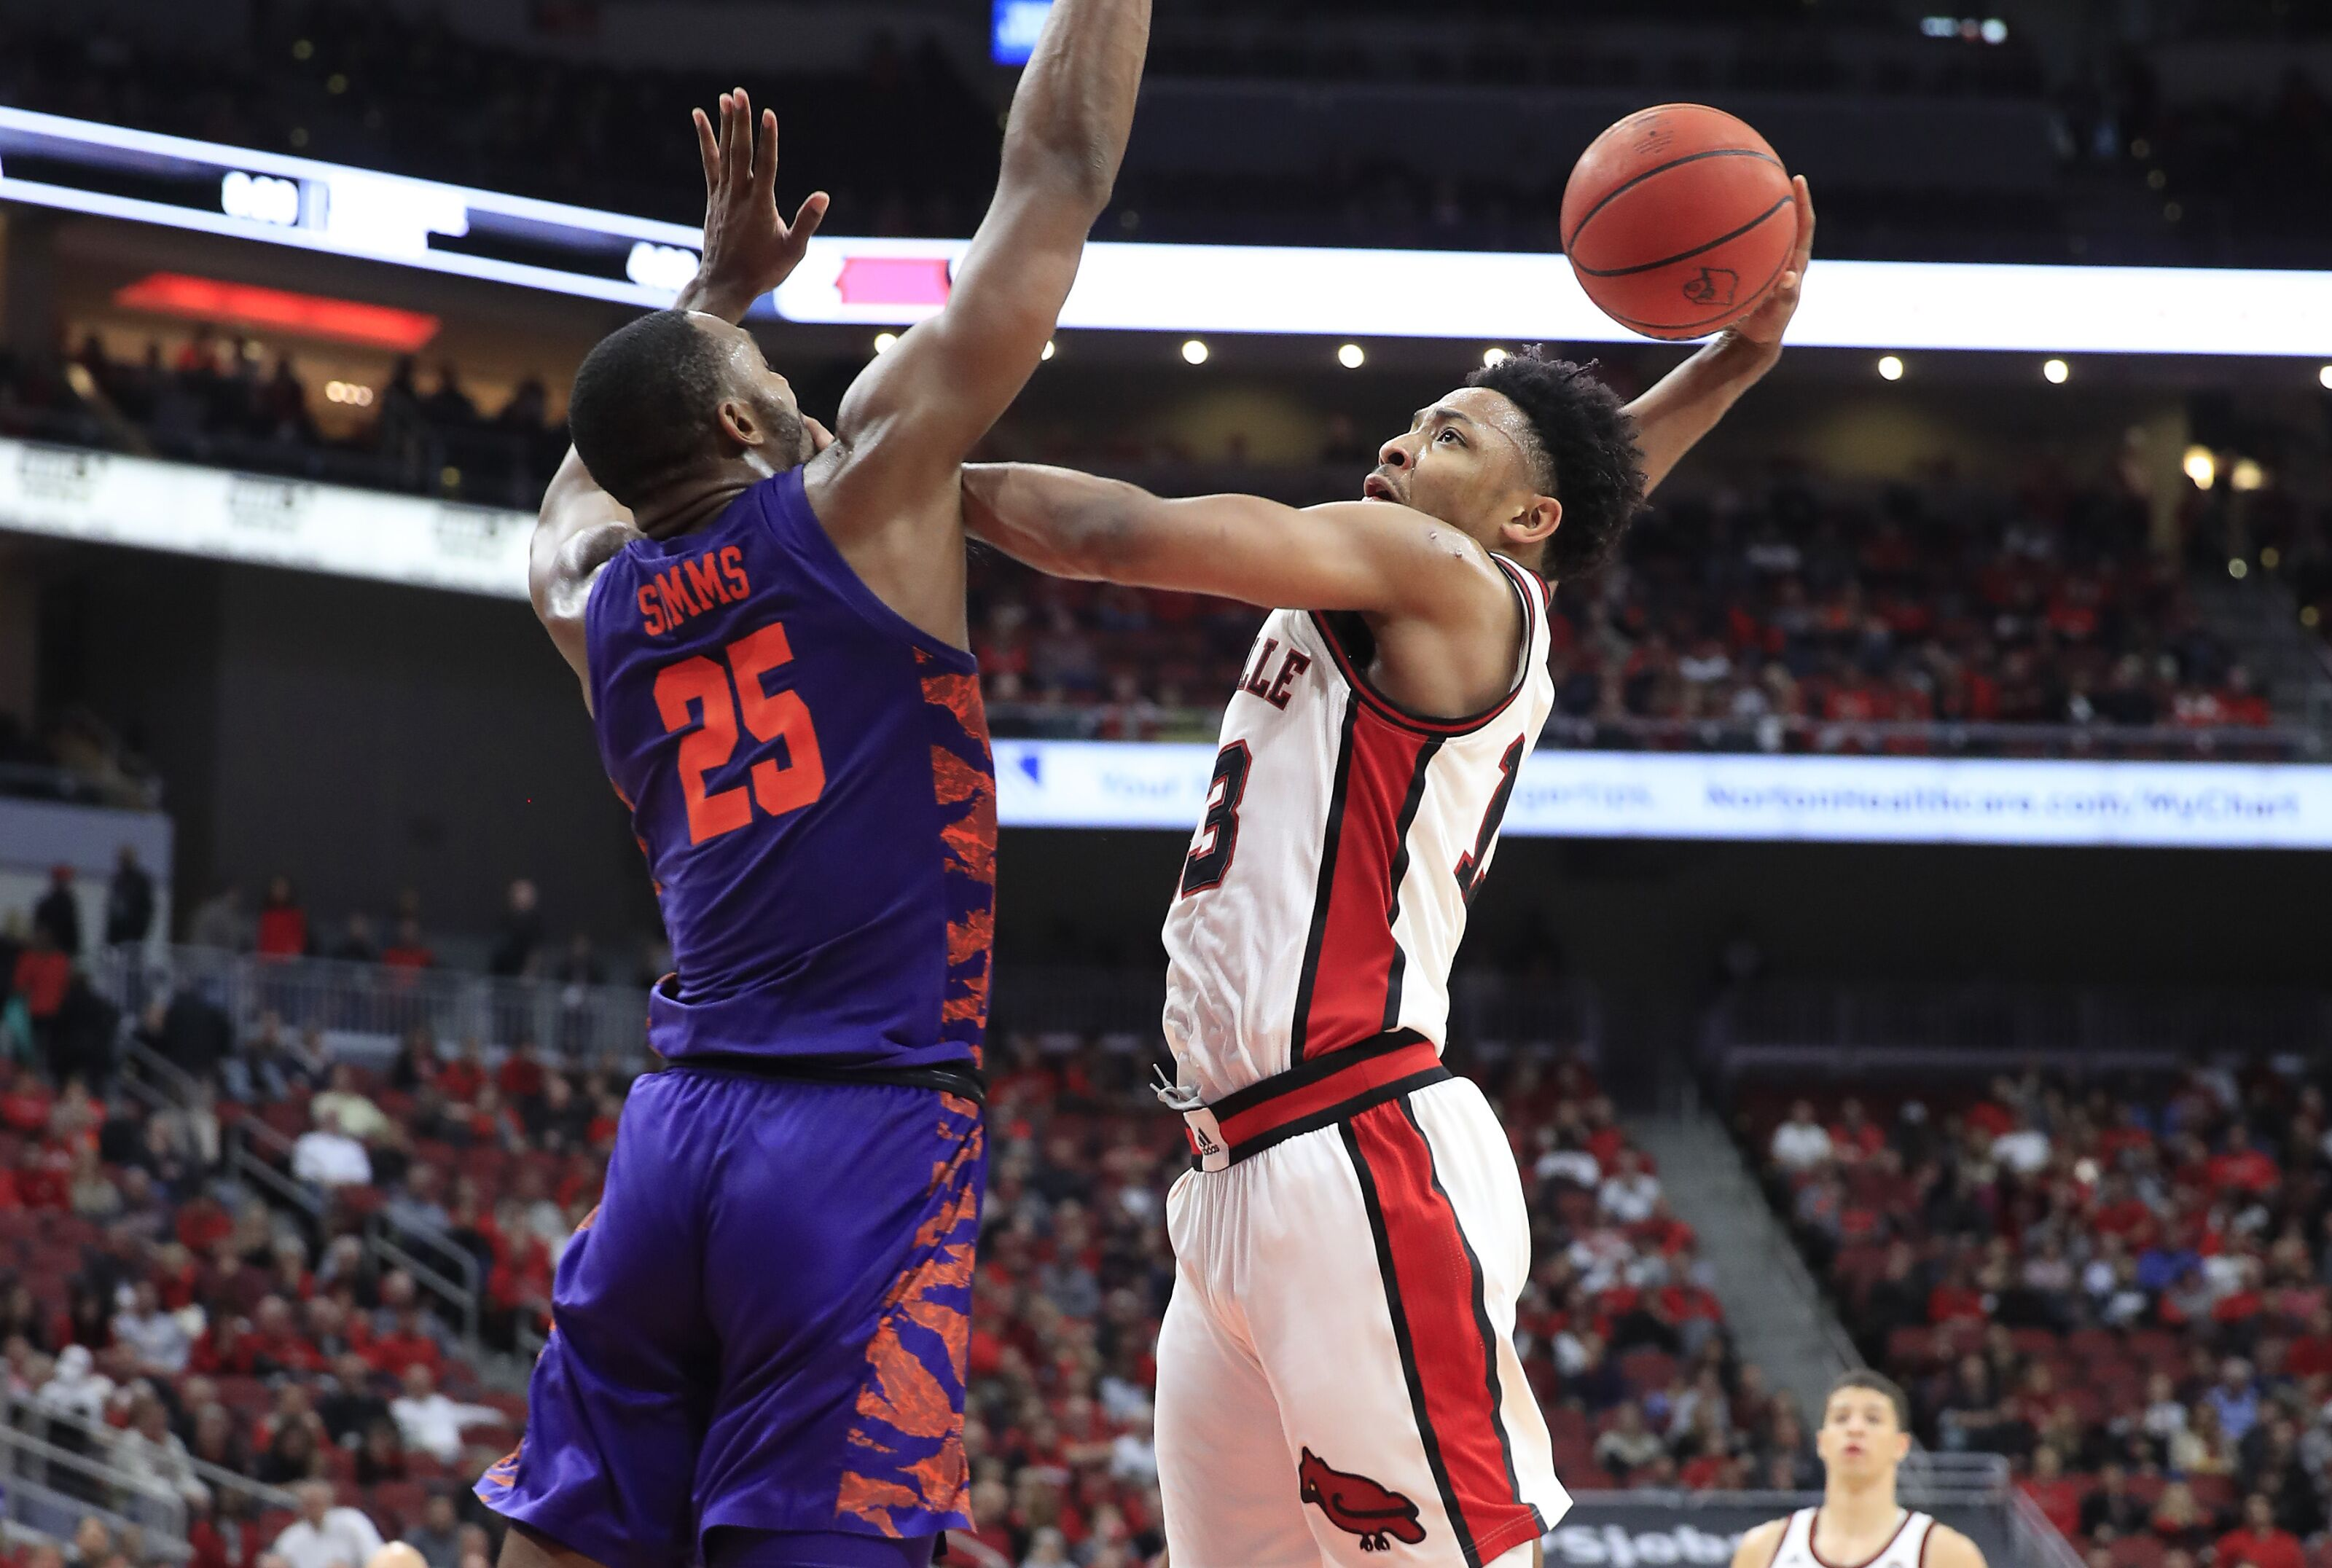 Louisville basketball: Cards throw back Clemson with massive first half